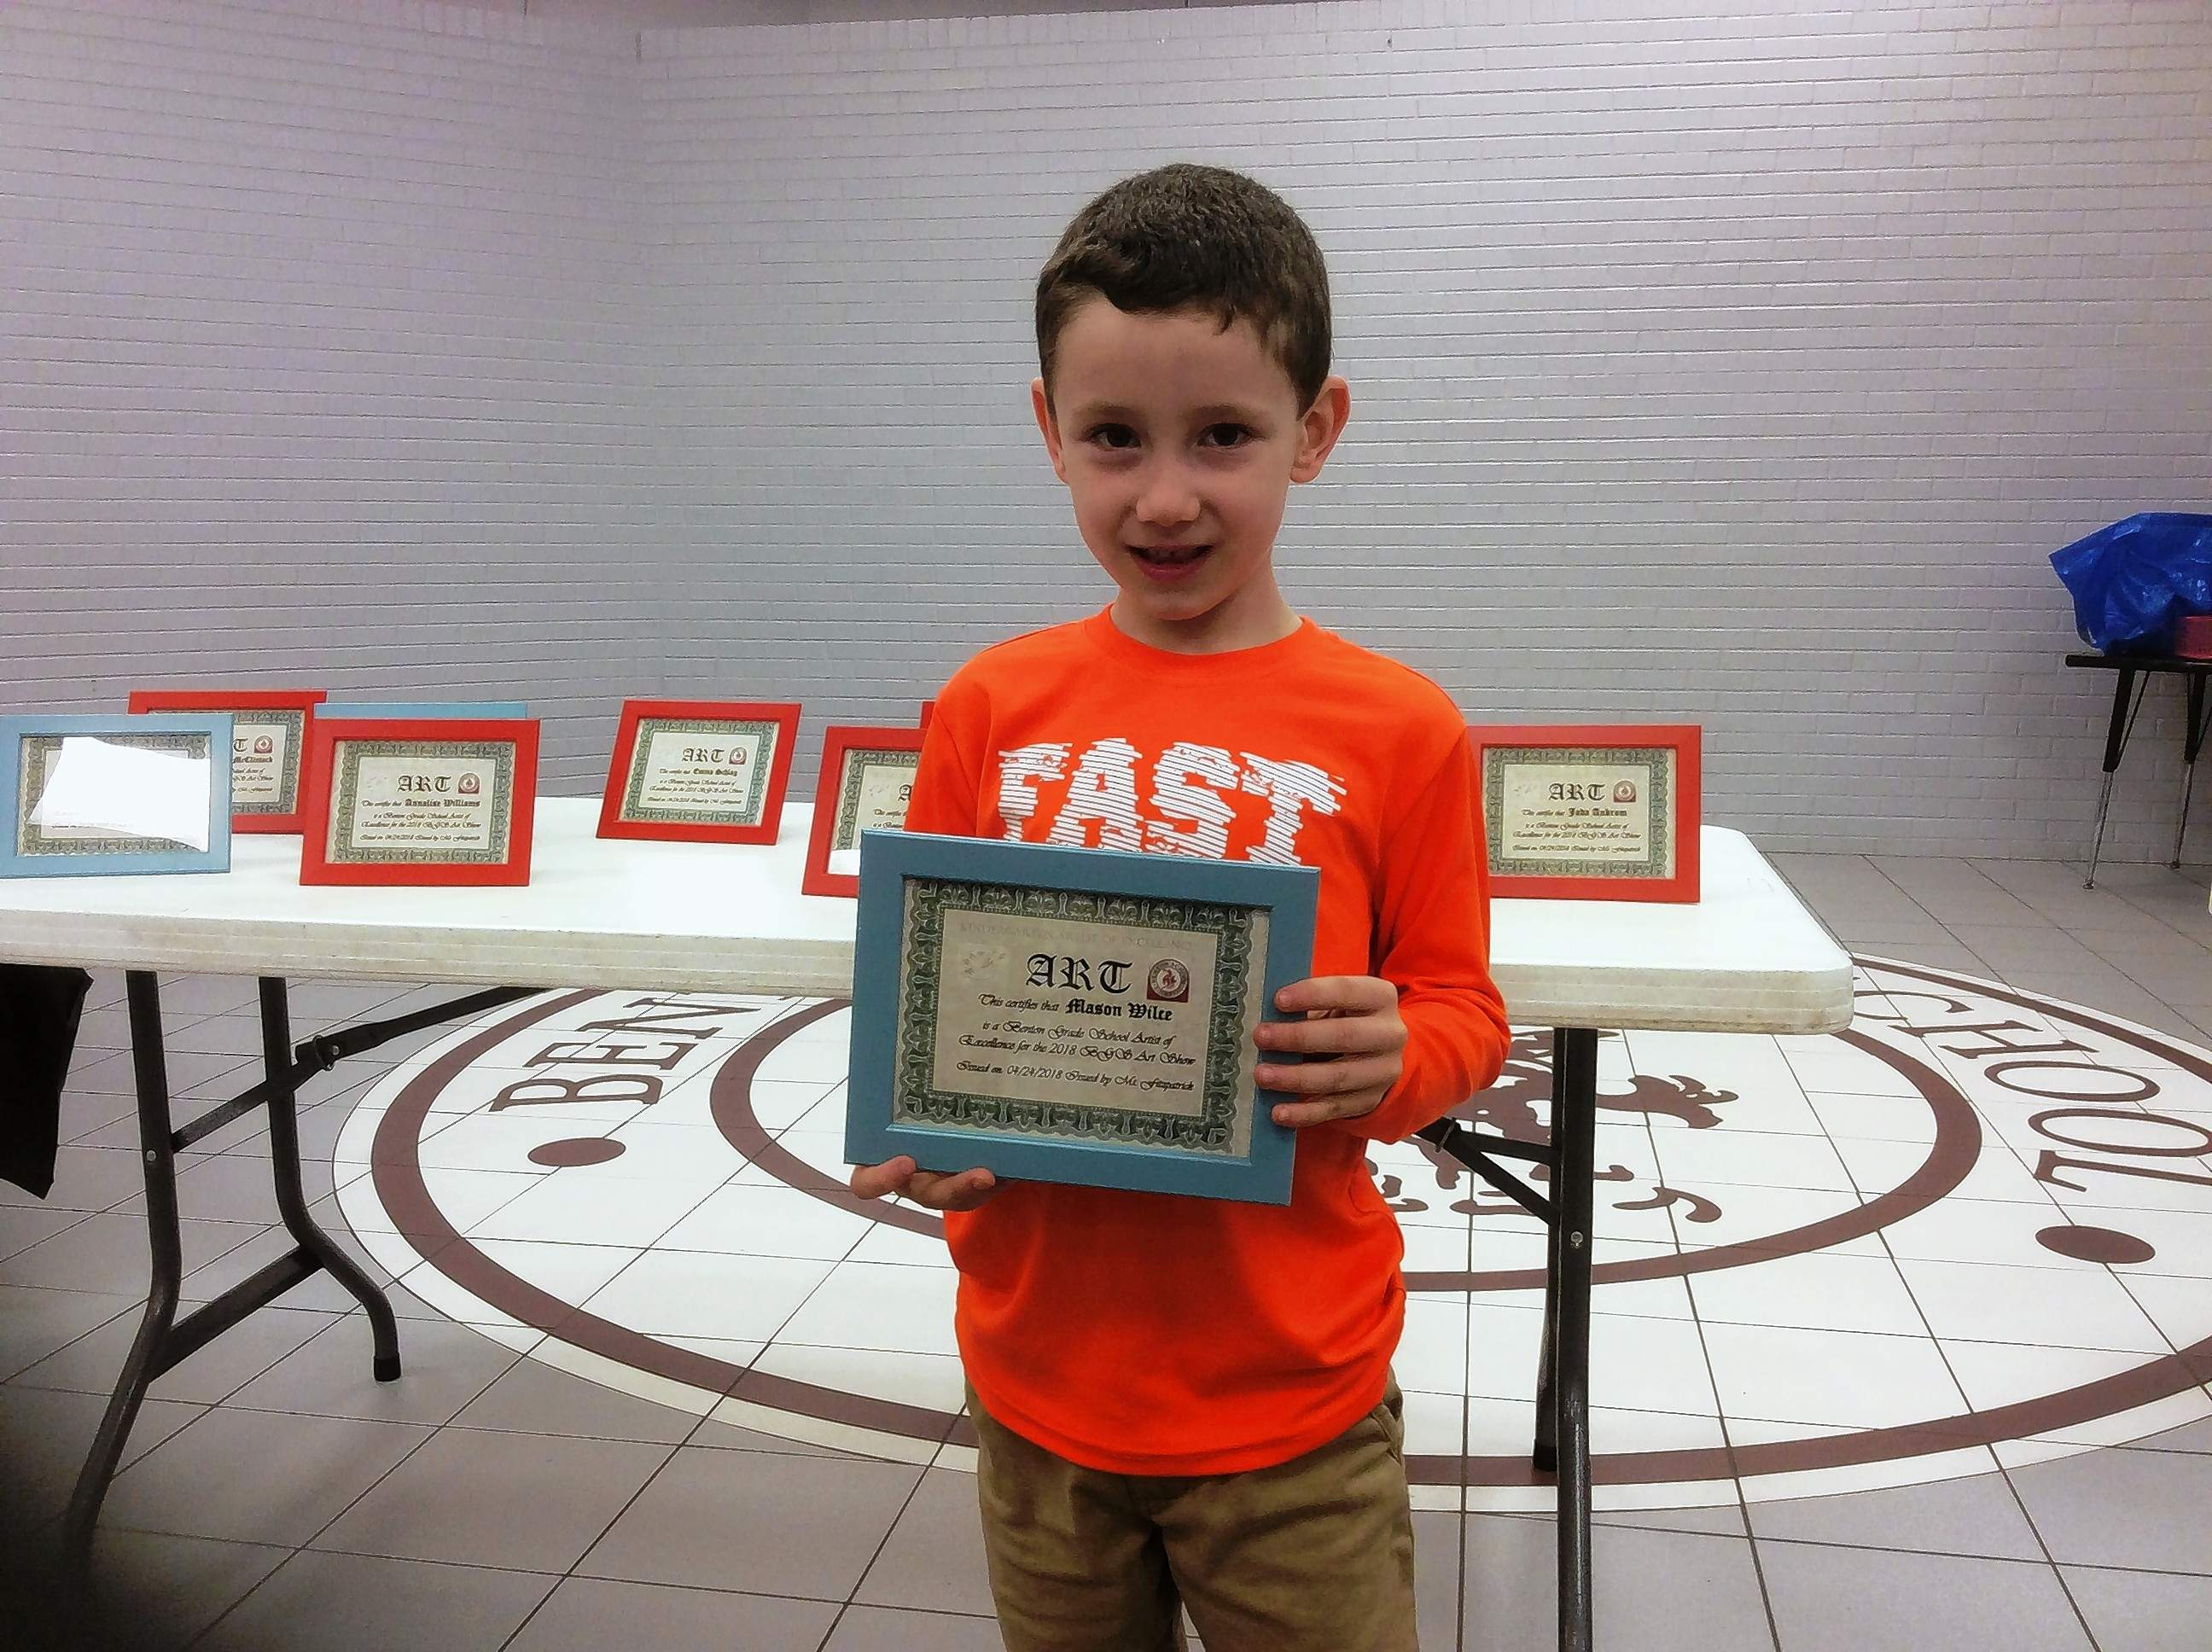 Mason Wilce stands with his Kindergarten Certificate of Excellence on April 28 at the Benton Middle School Gymnasium and Commons, where hundreds of K-8 works were on display.